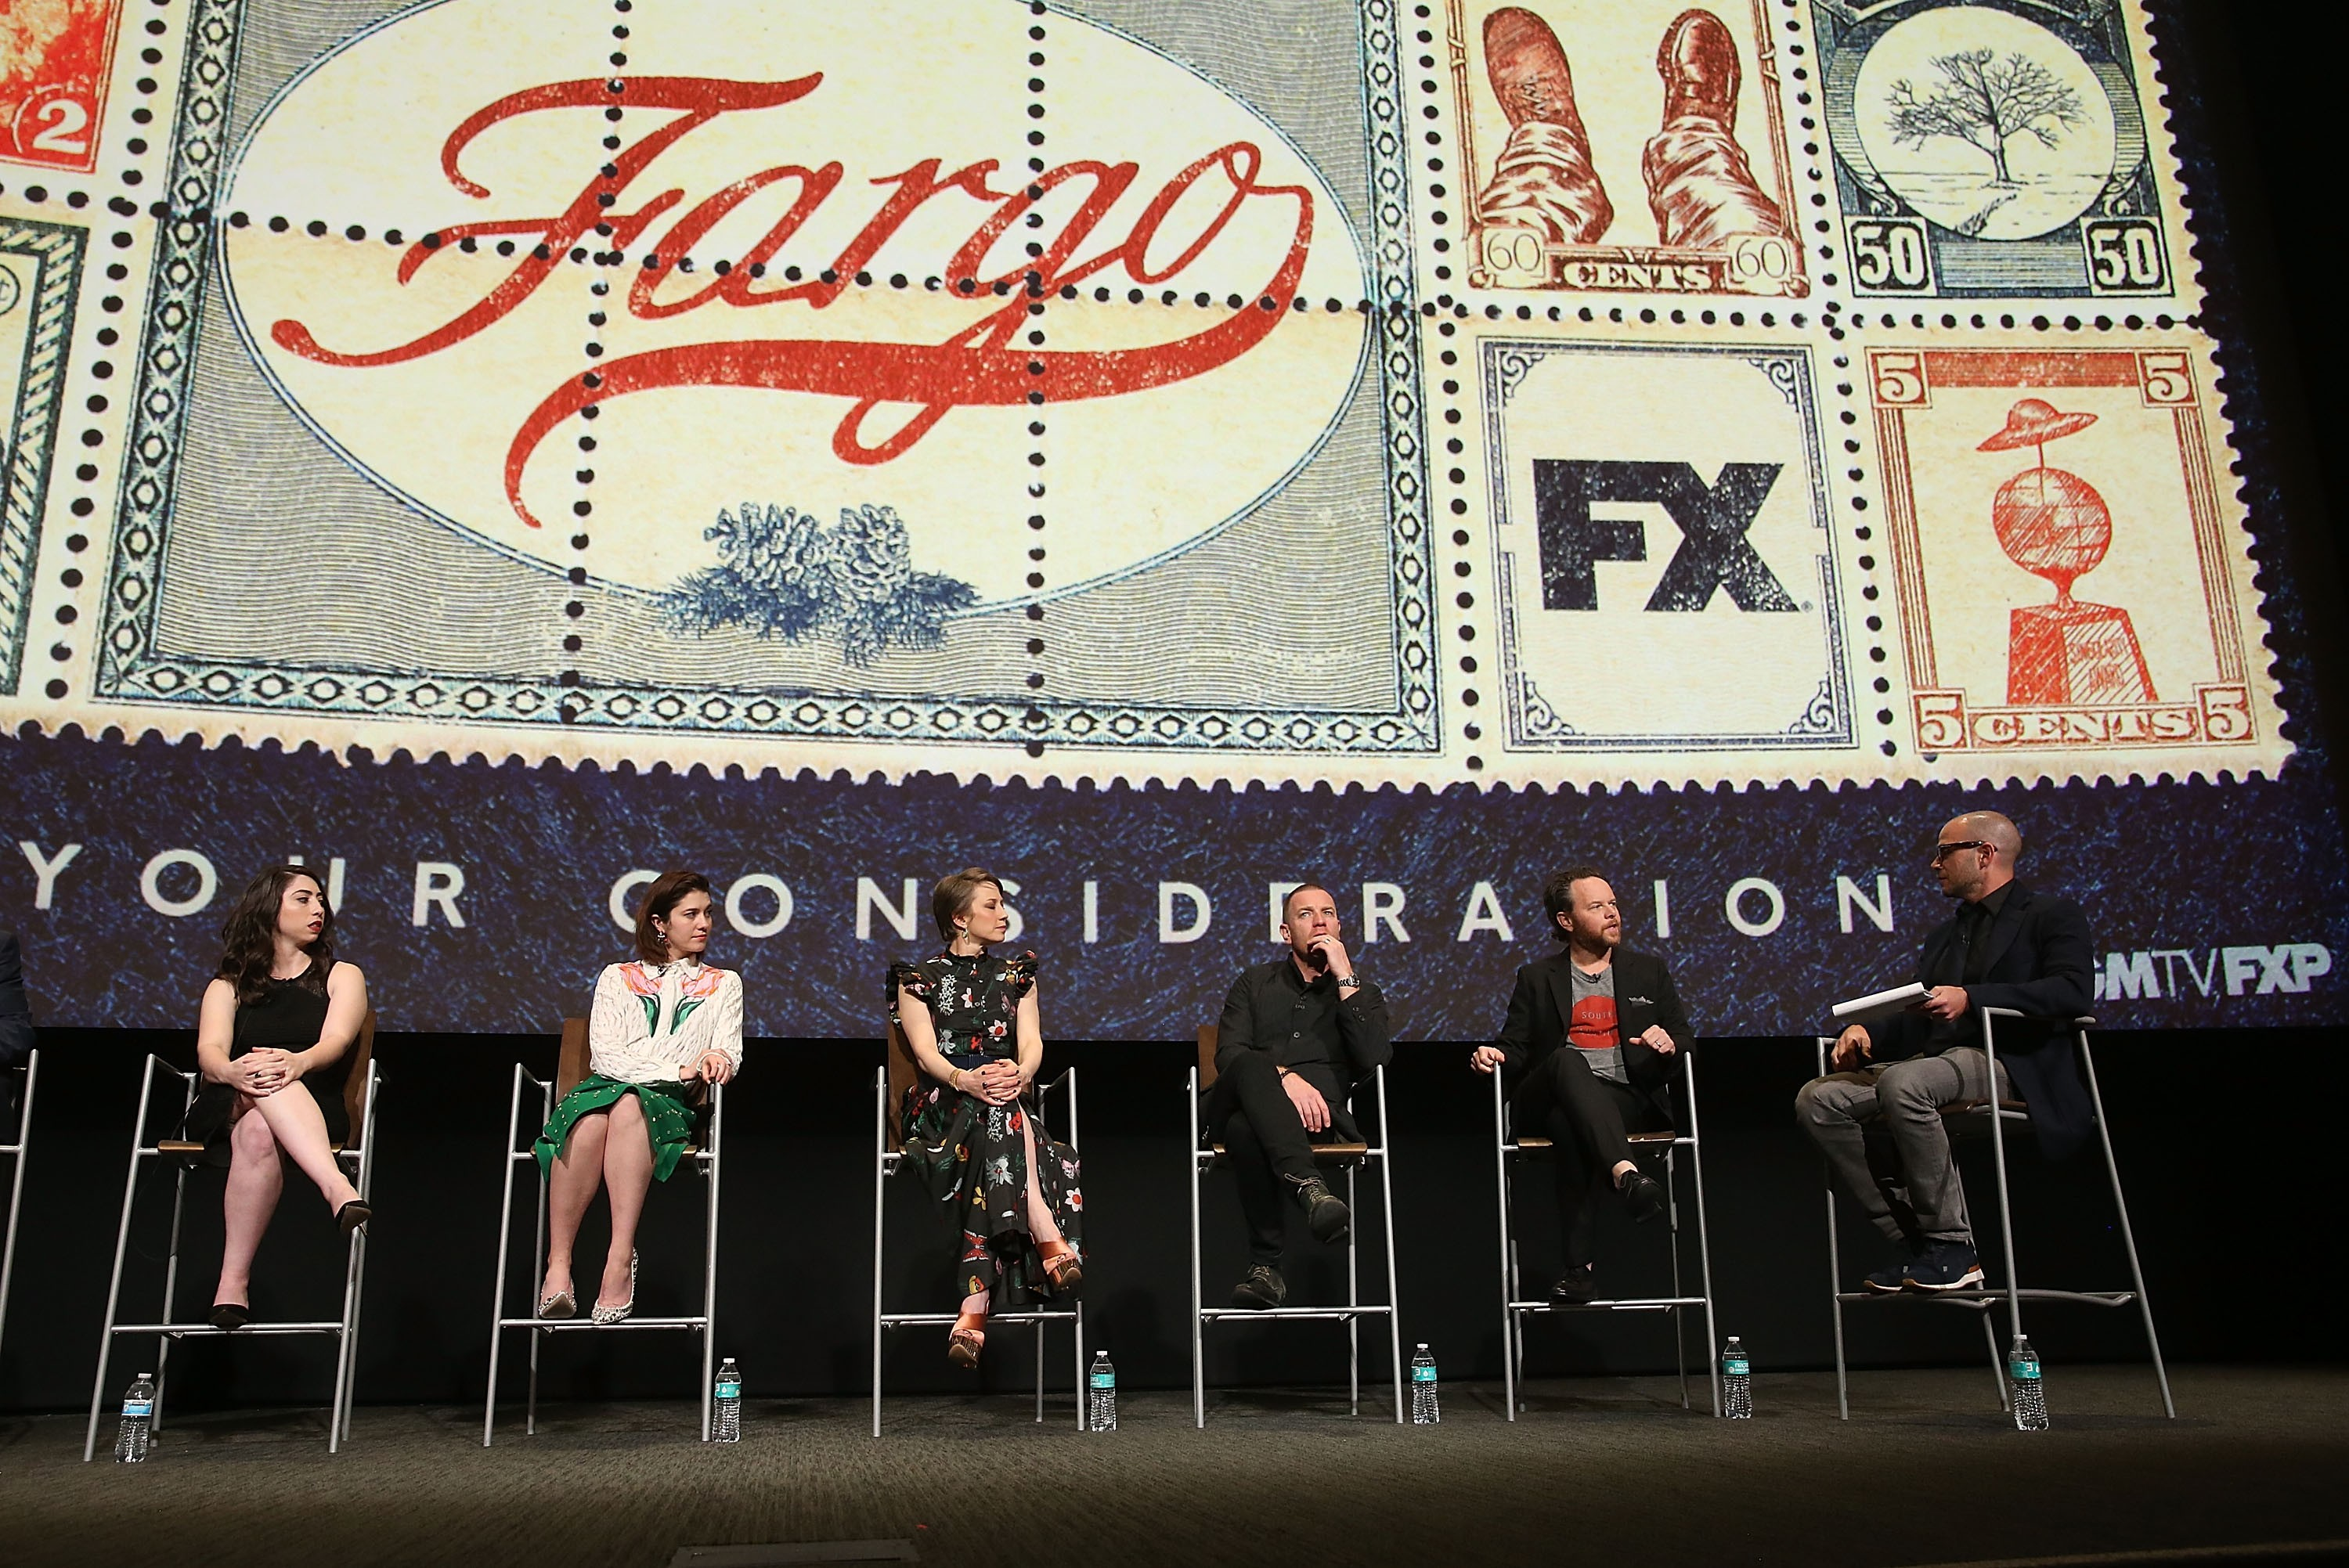 """NORTH HOLLYWOOD, CA - MAY 11:  (L-R) Actors Olivia Sandoval, Mary Elizabeth Winstead, Carrie Coon, Ewan McGregor, executive producer Noah Hawley and writer Damon Lindelof attend FX's """"Fargo"""" For Your Consideration Event on May 11, 2017 in North Hollywood, California.  (Photo by Jesse Grant/Getty Images)"""